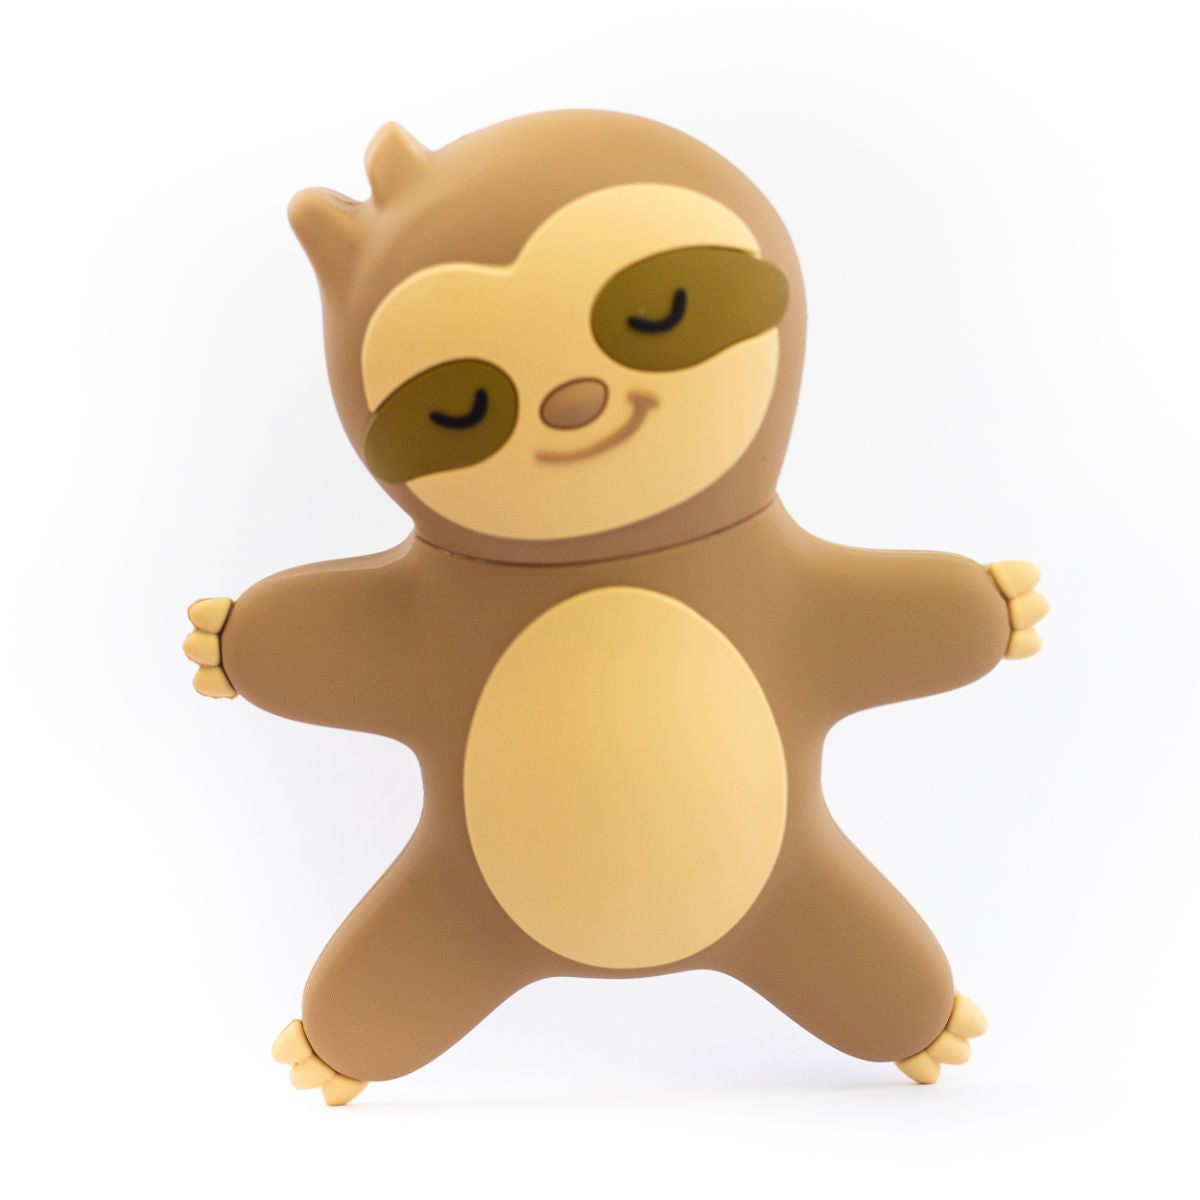 Moji Emoji power bank 2600mAh, lazy sloth